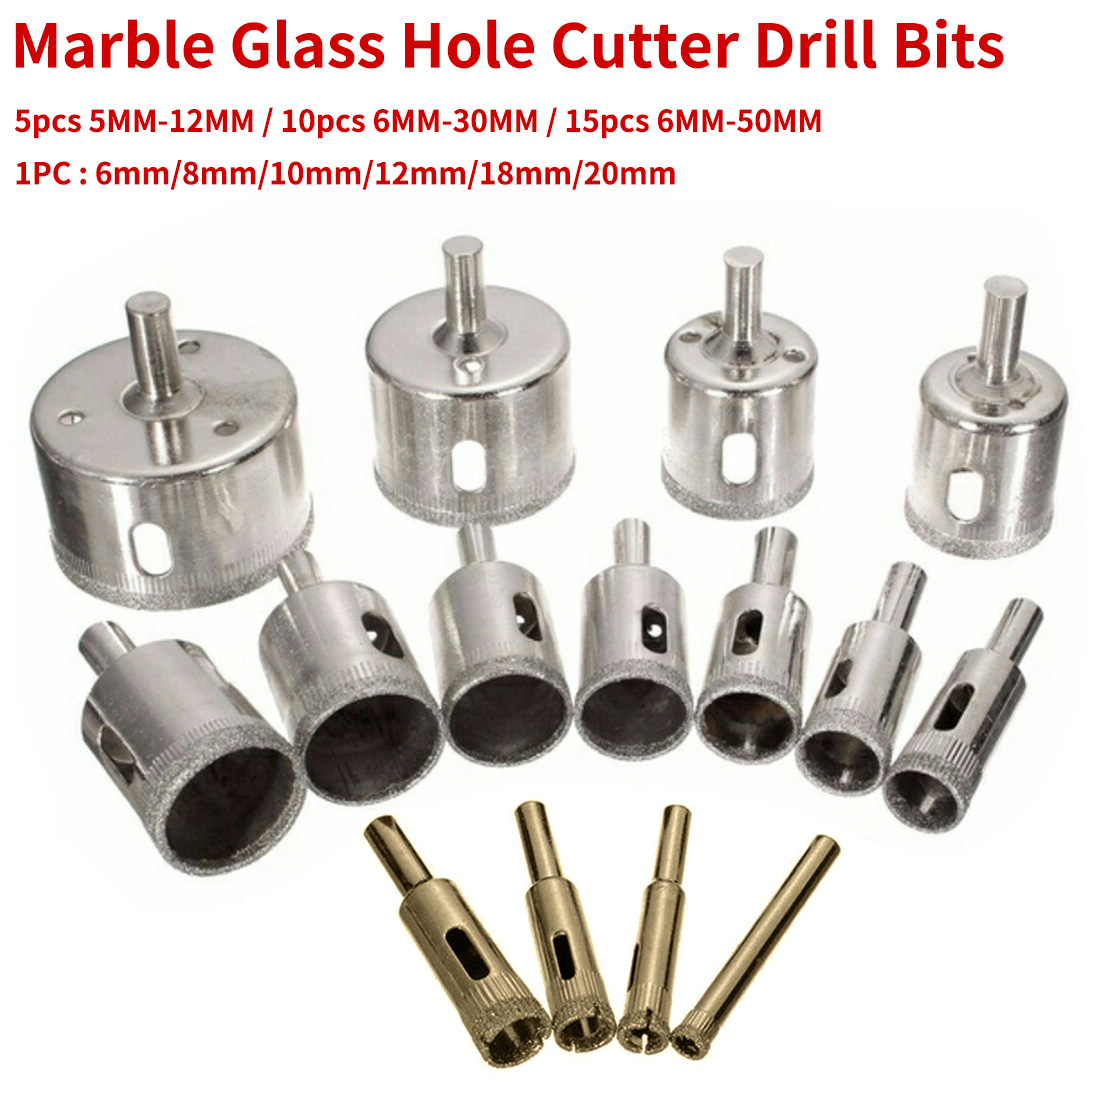 5mm-12mm/6mm-30mm/50mm Marble Glass Diamond Core Drill Bit Ceramic Tile Bead Knife Glass Dilator Glass Drill Bits 5pc/10pc/15pc